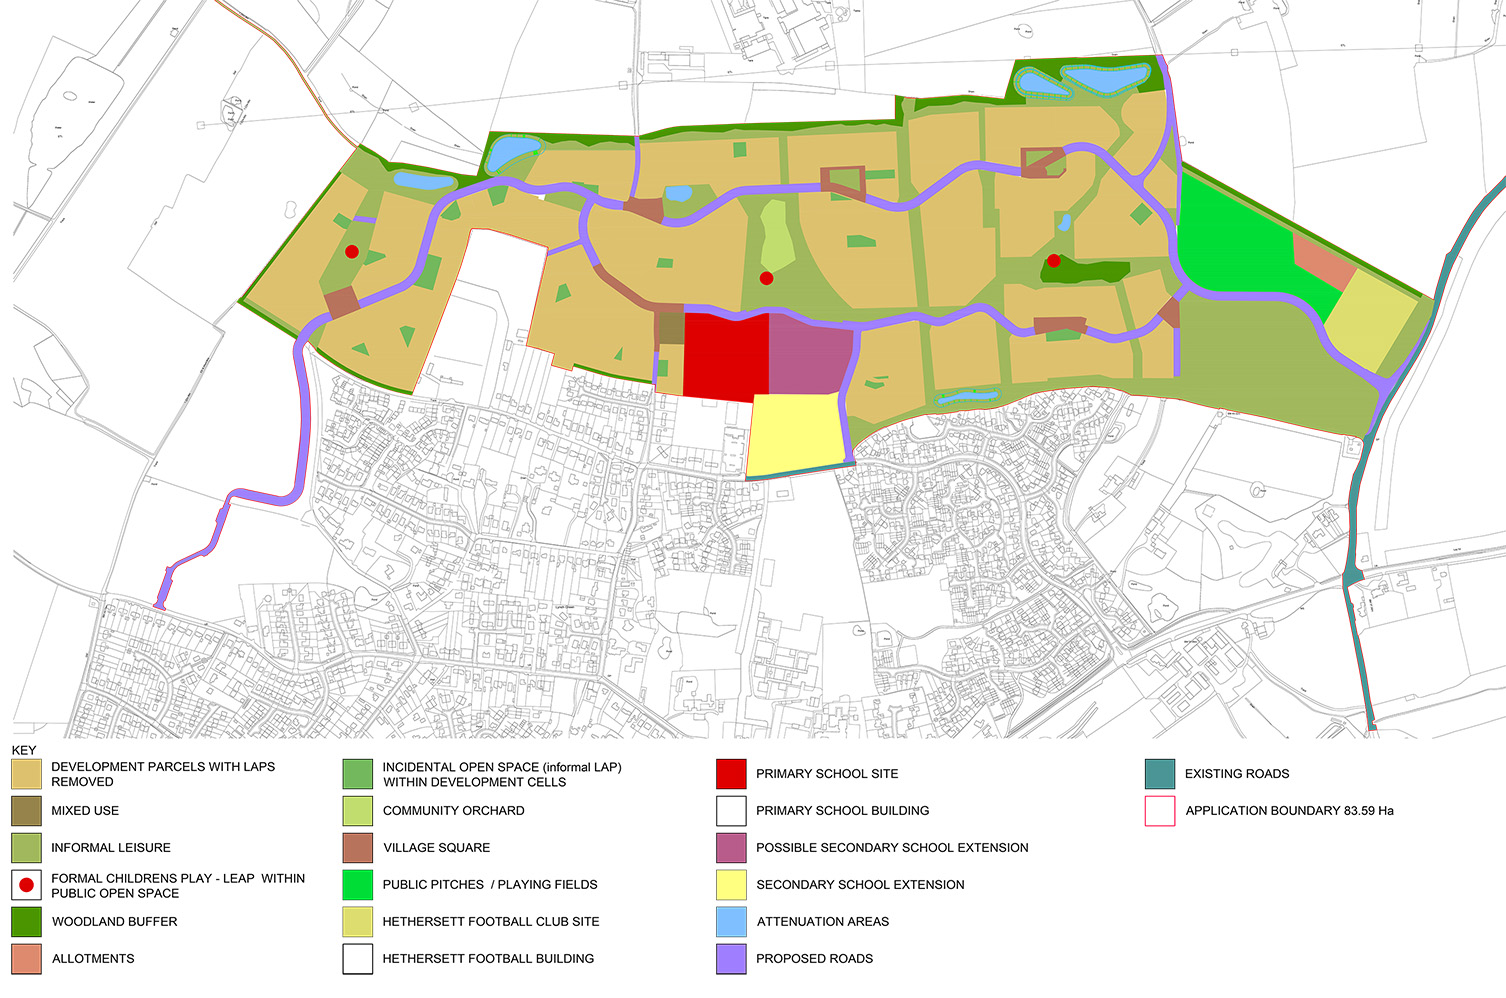 20803 - Hethersett - Land Use Plan - For Website - 21_05_15